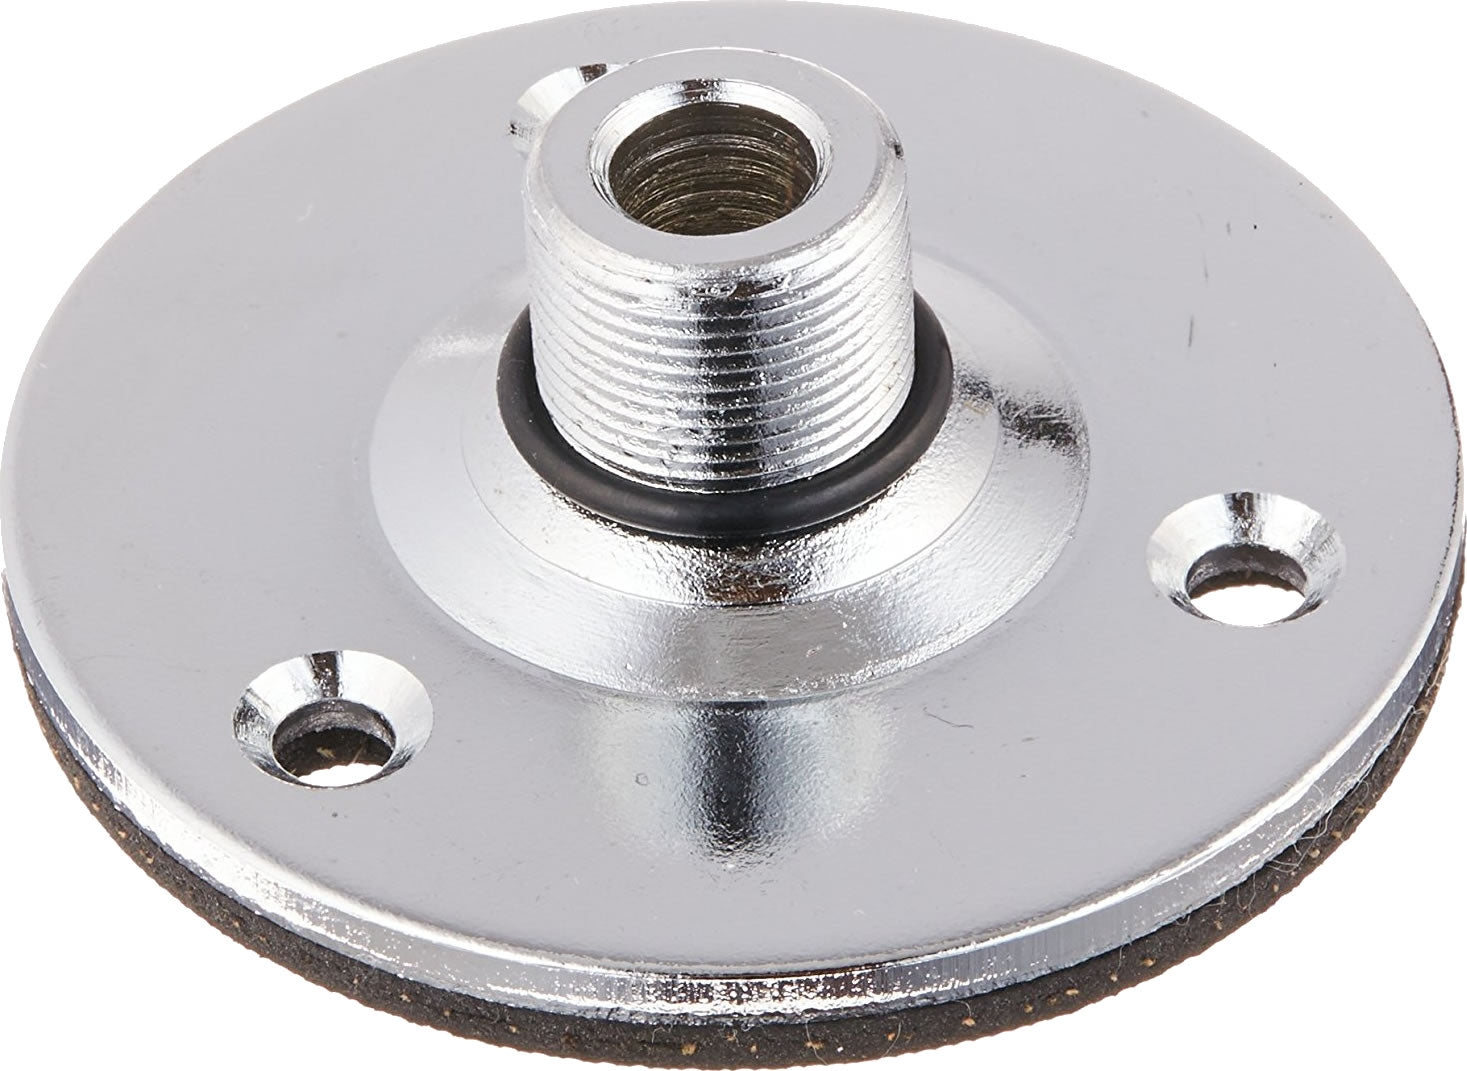 96-3021 Microphone Table Flange Mount